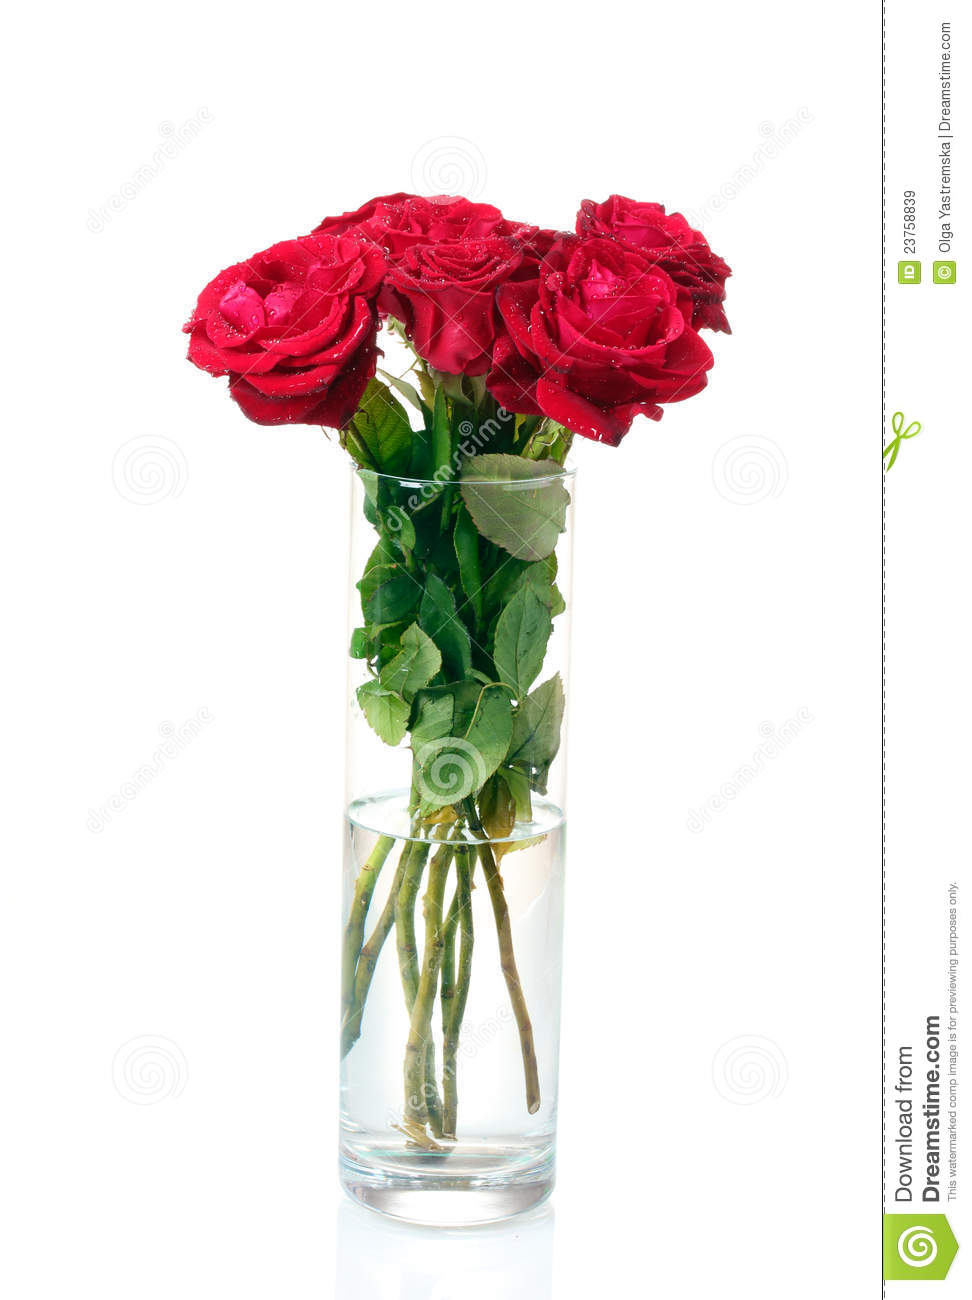 Beautiful Red Roses In A Vase Stock Image  Image of drops